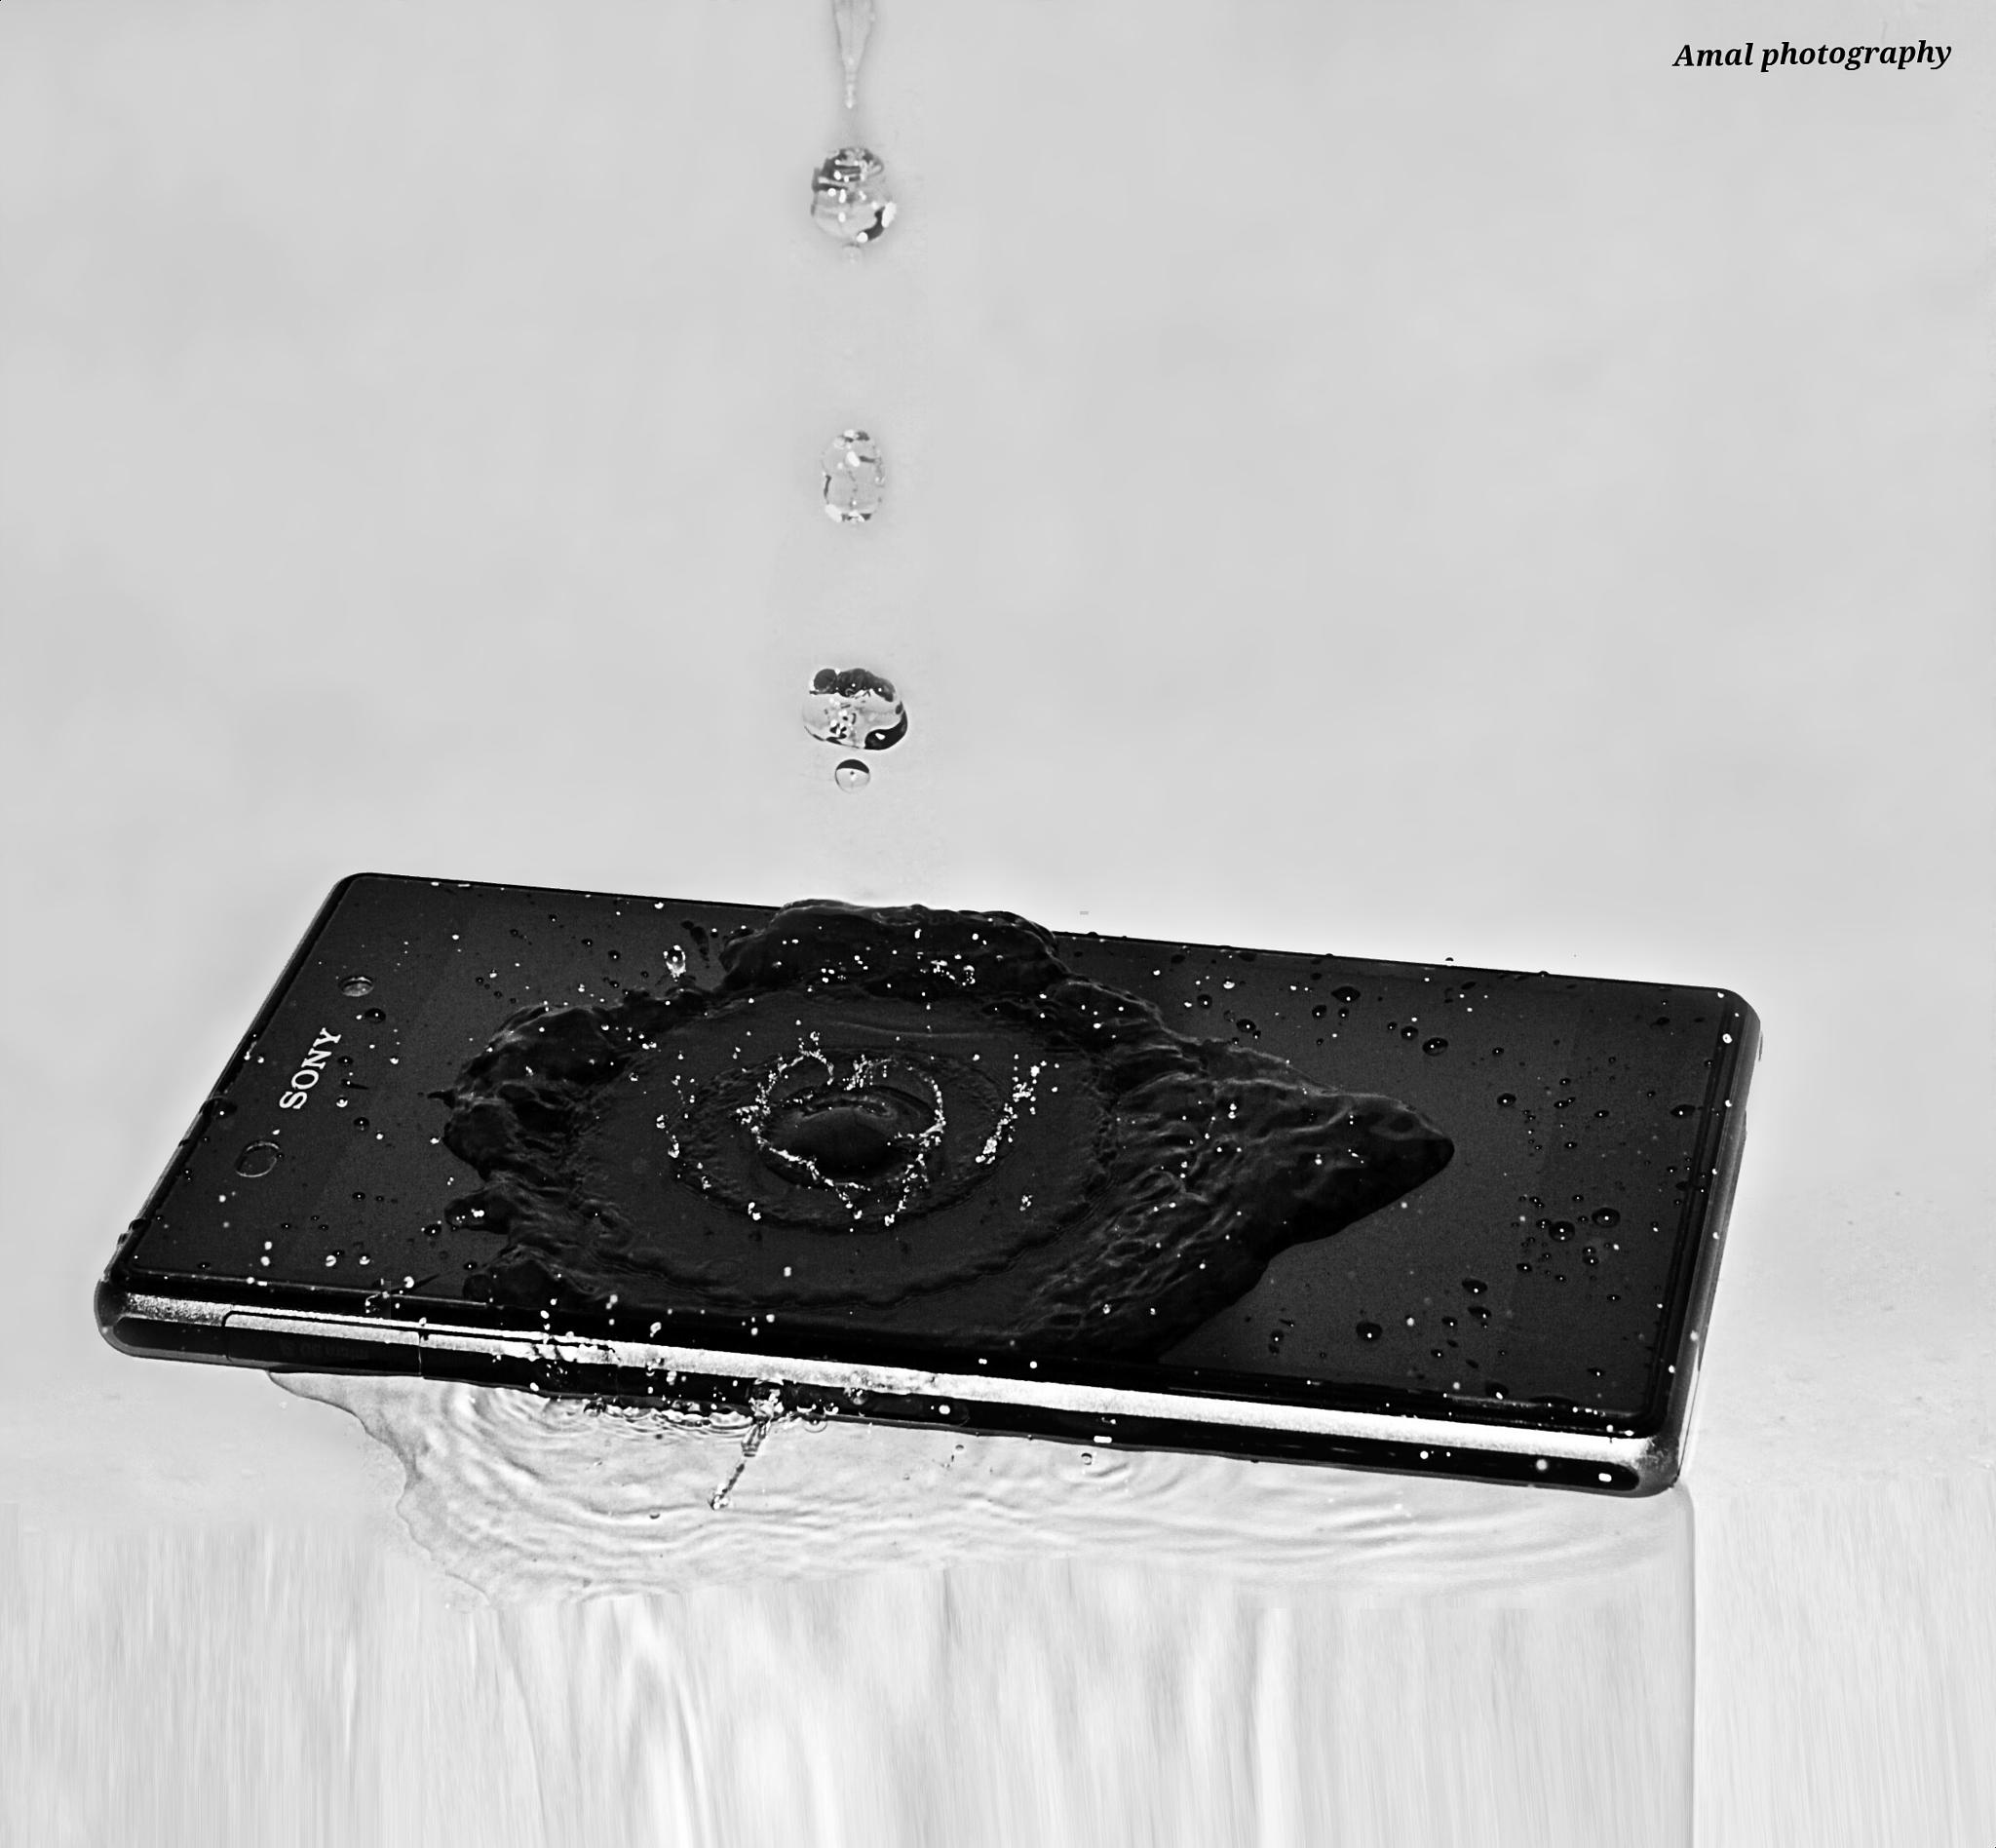 Sony Xperia and water are lovers <3  by Amal